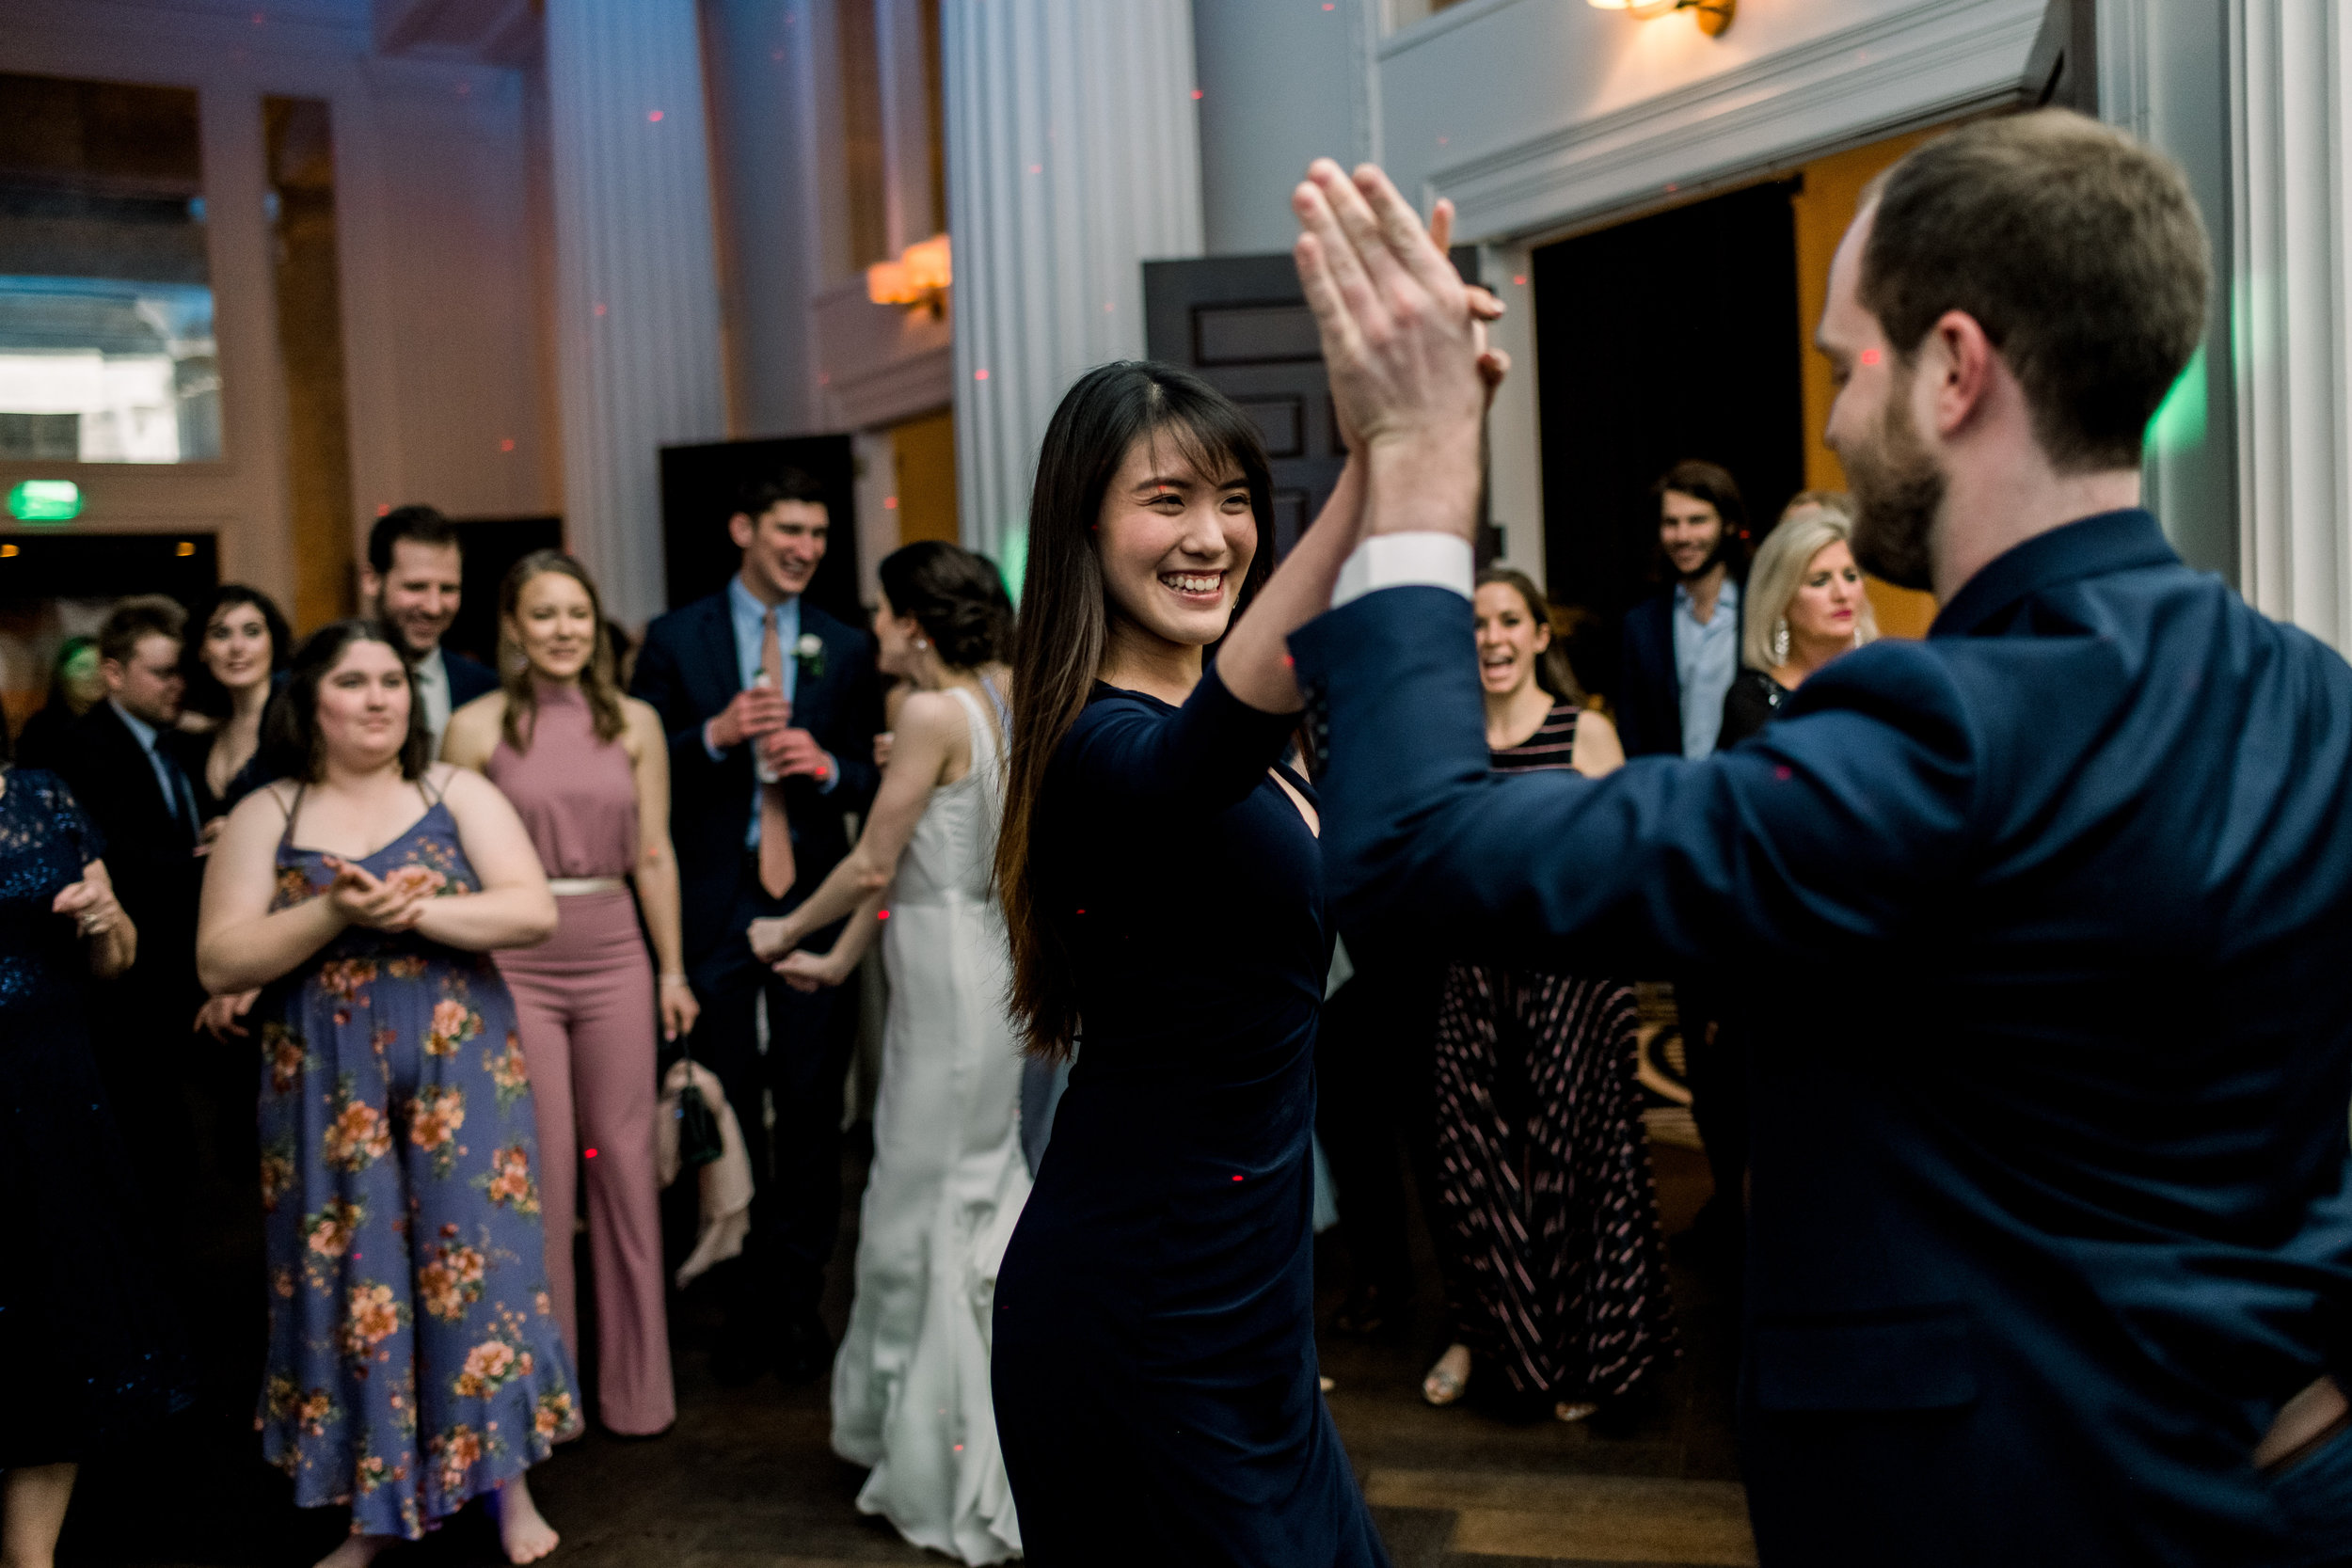 Bride and groom dancing with guests at Pittsburgh wedding at Hotel Monaco planned by Exhale Events. Find more modern wedding ideas at exhale-events.com!